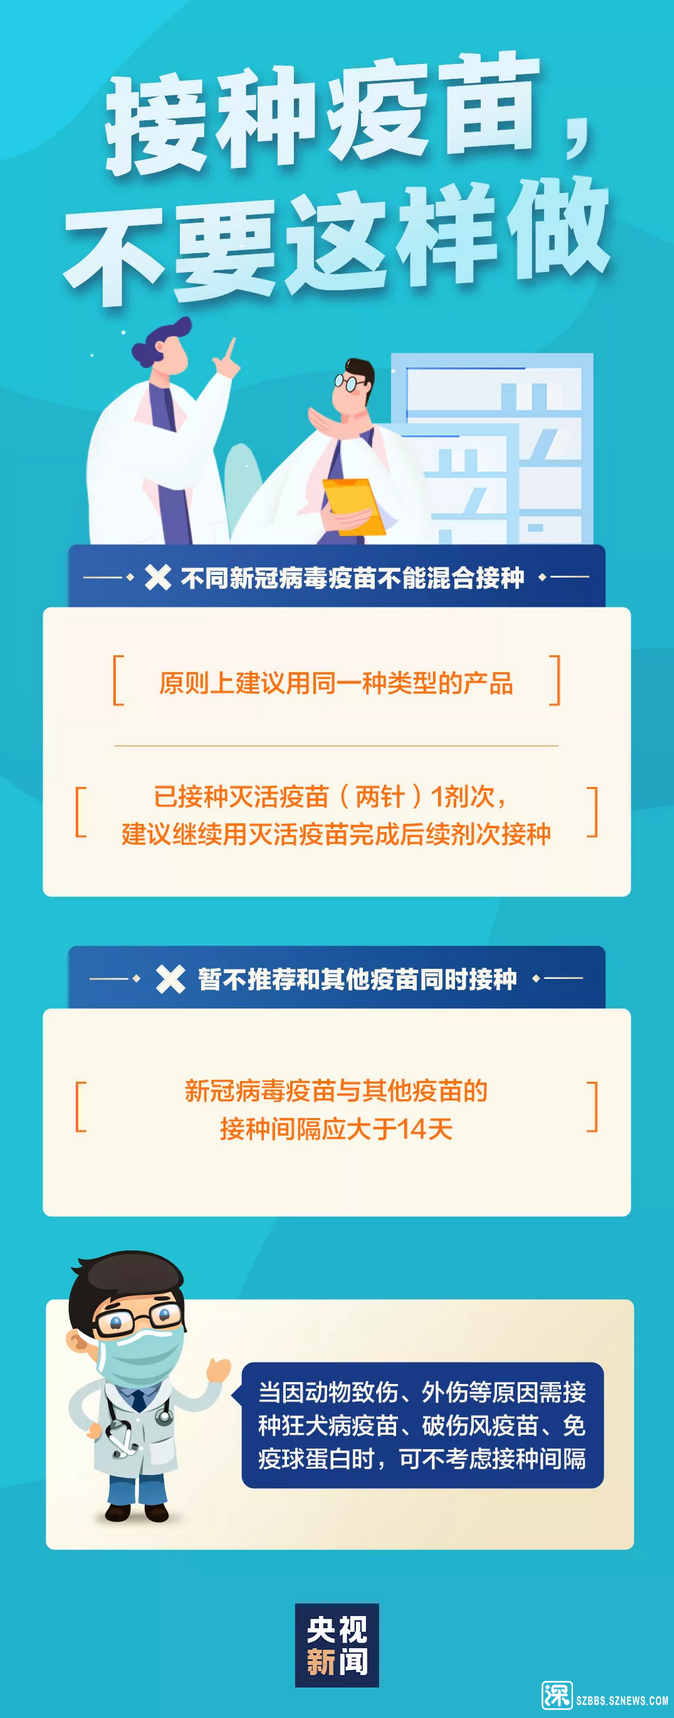 20210526-a3.png